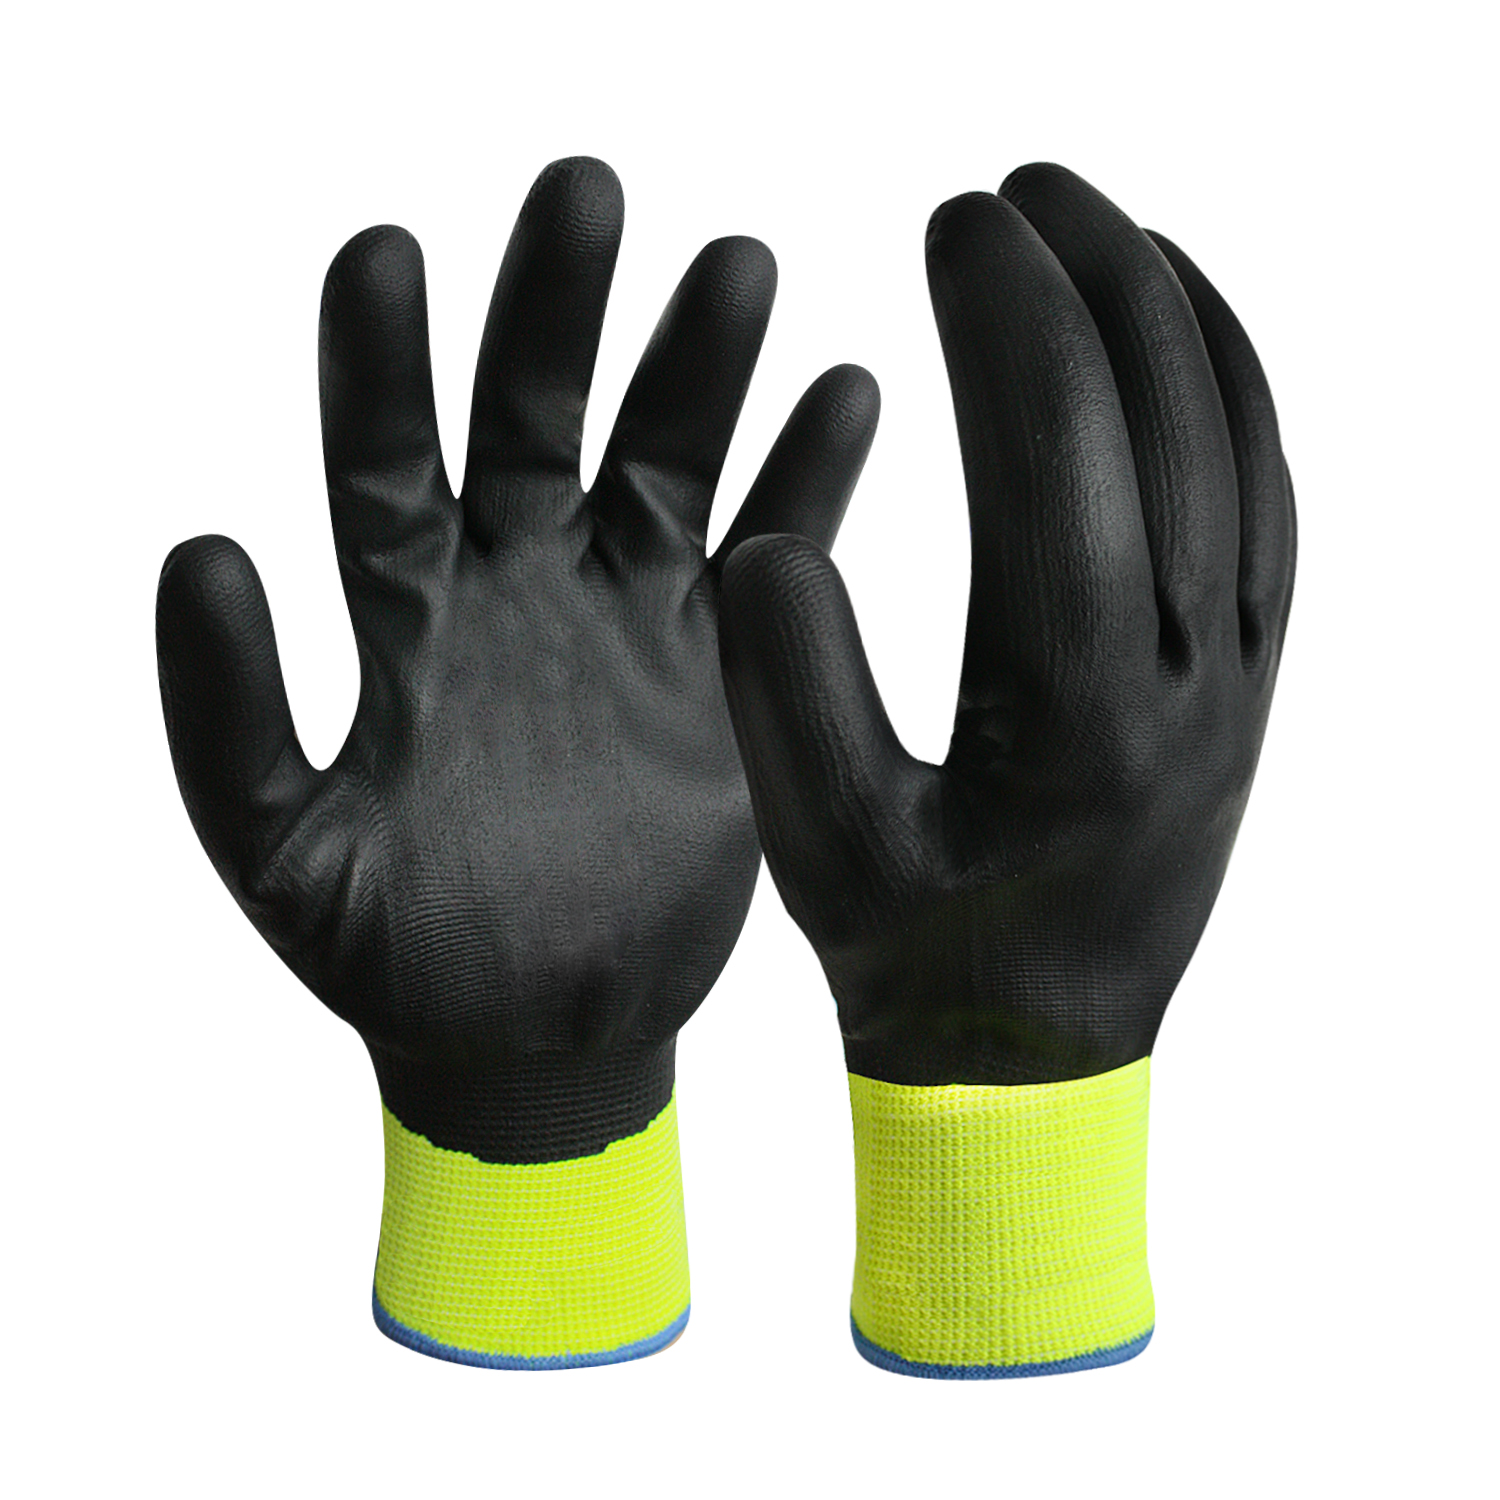 Nitrile Coated Hi-Vis Yellow Polyester Gloves with Touch Screen Finger/TSG-004